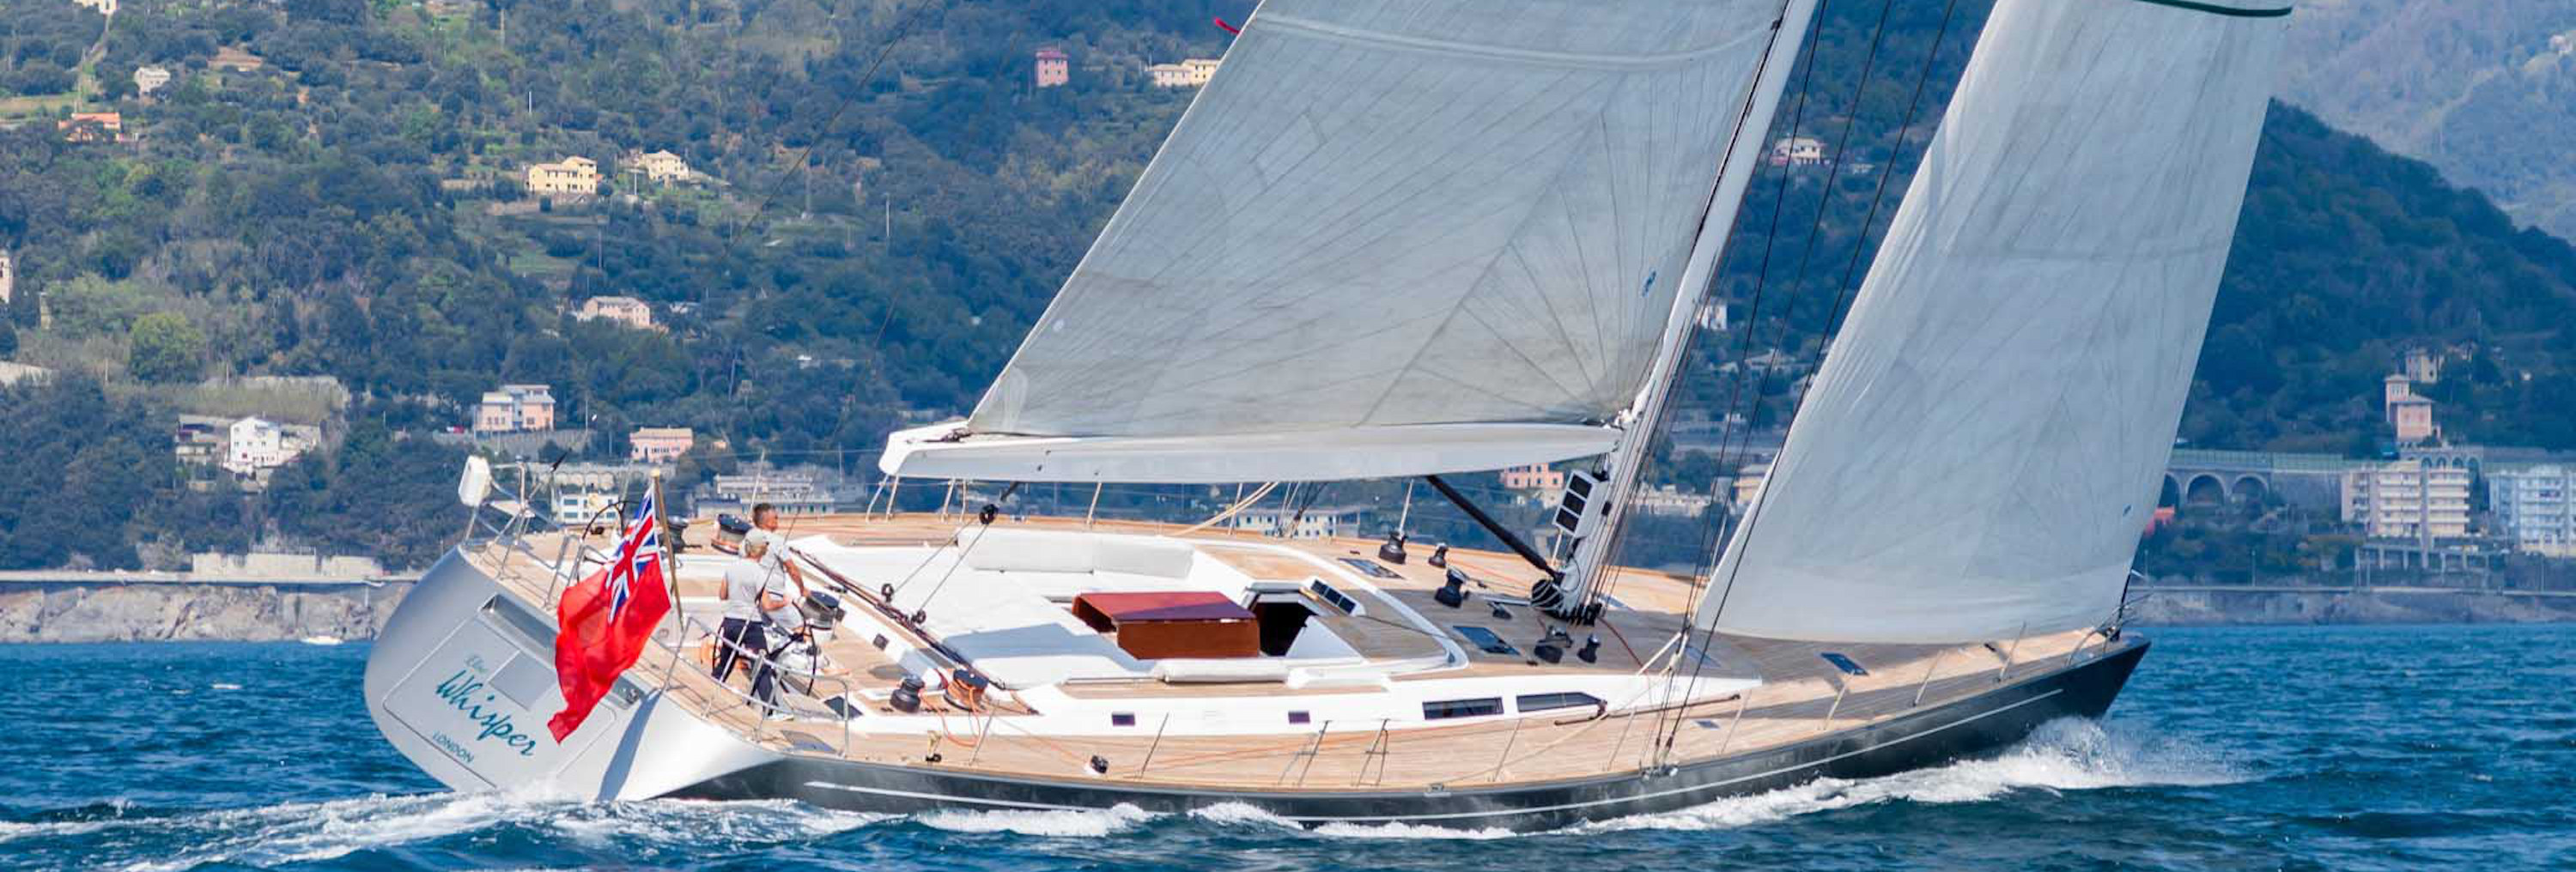 ELISE WHISPER: Last Minute Charter Special Offer